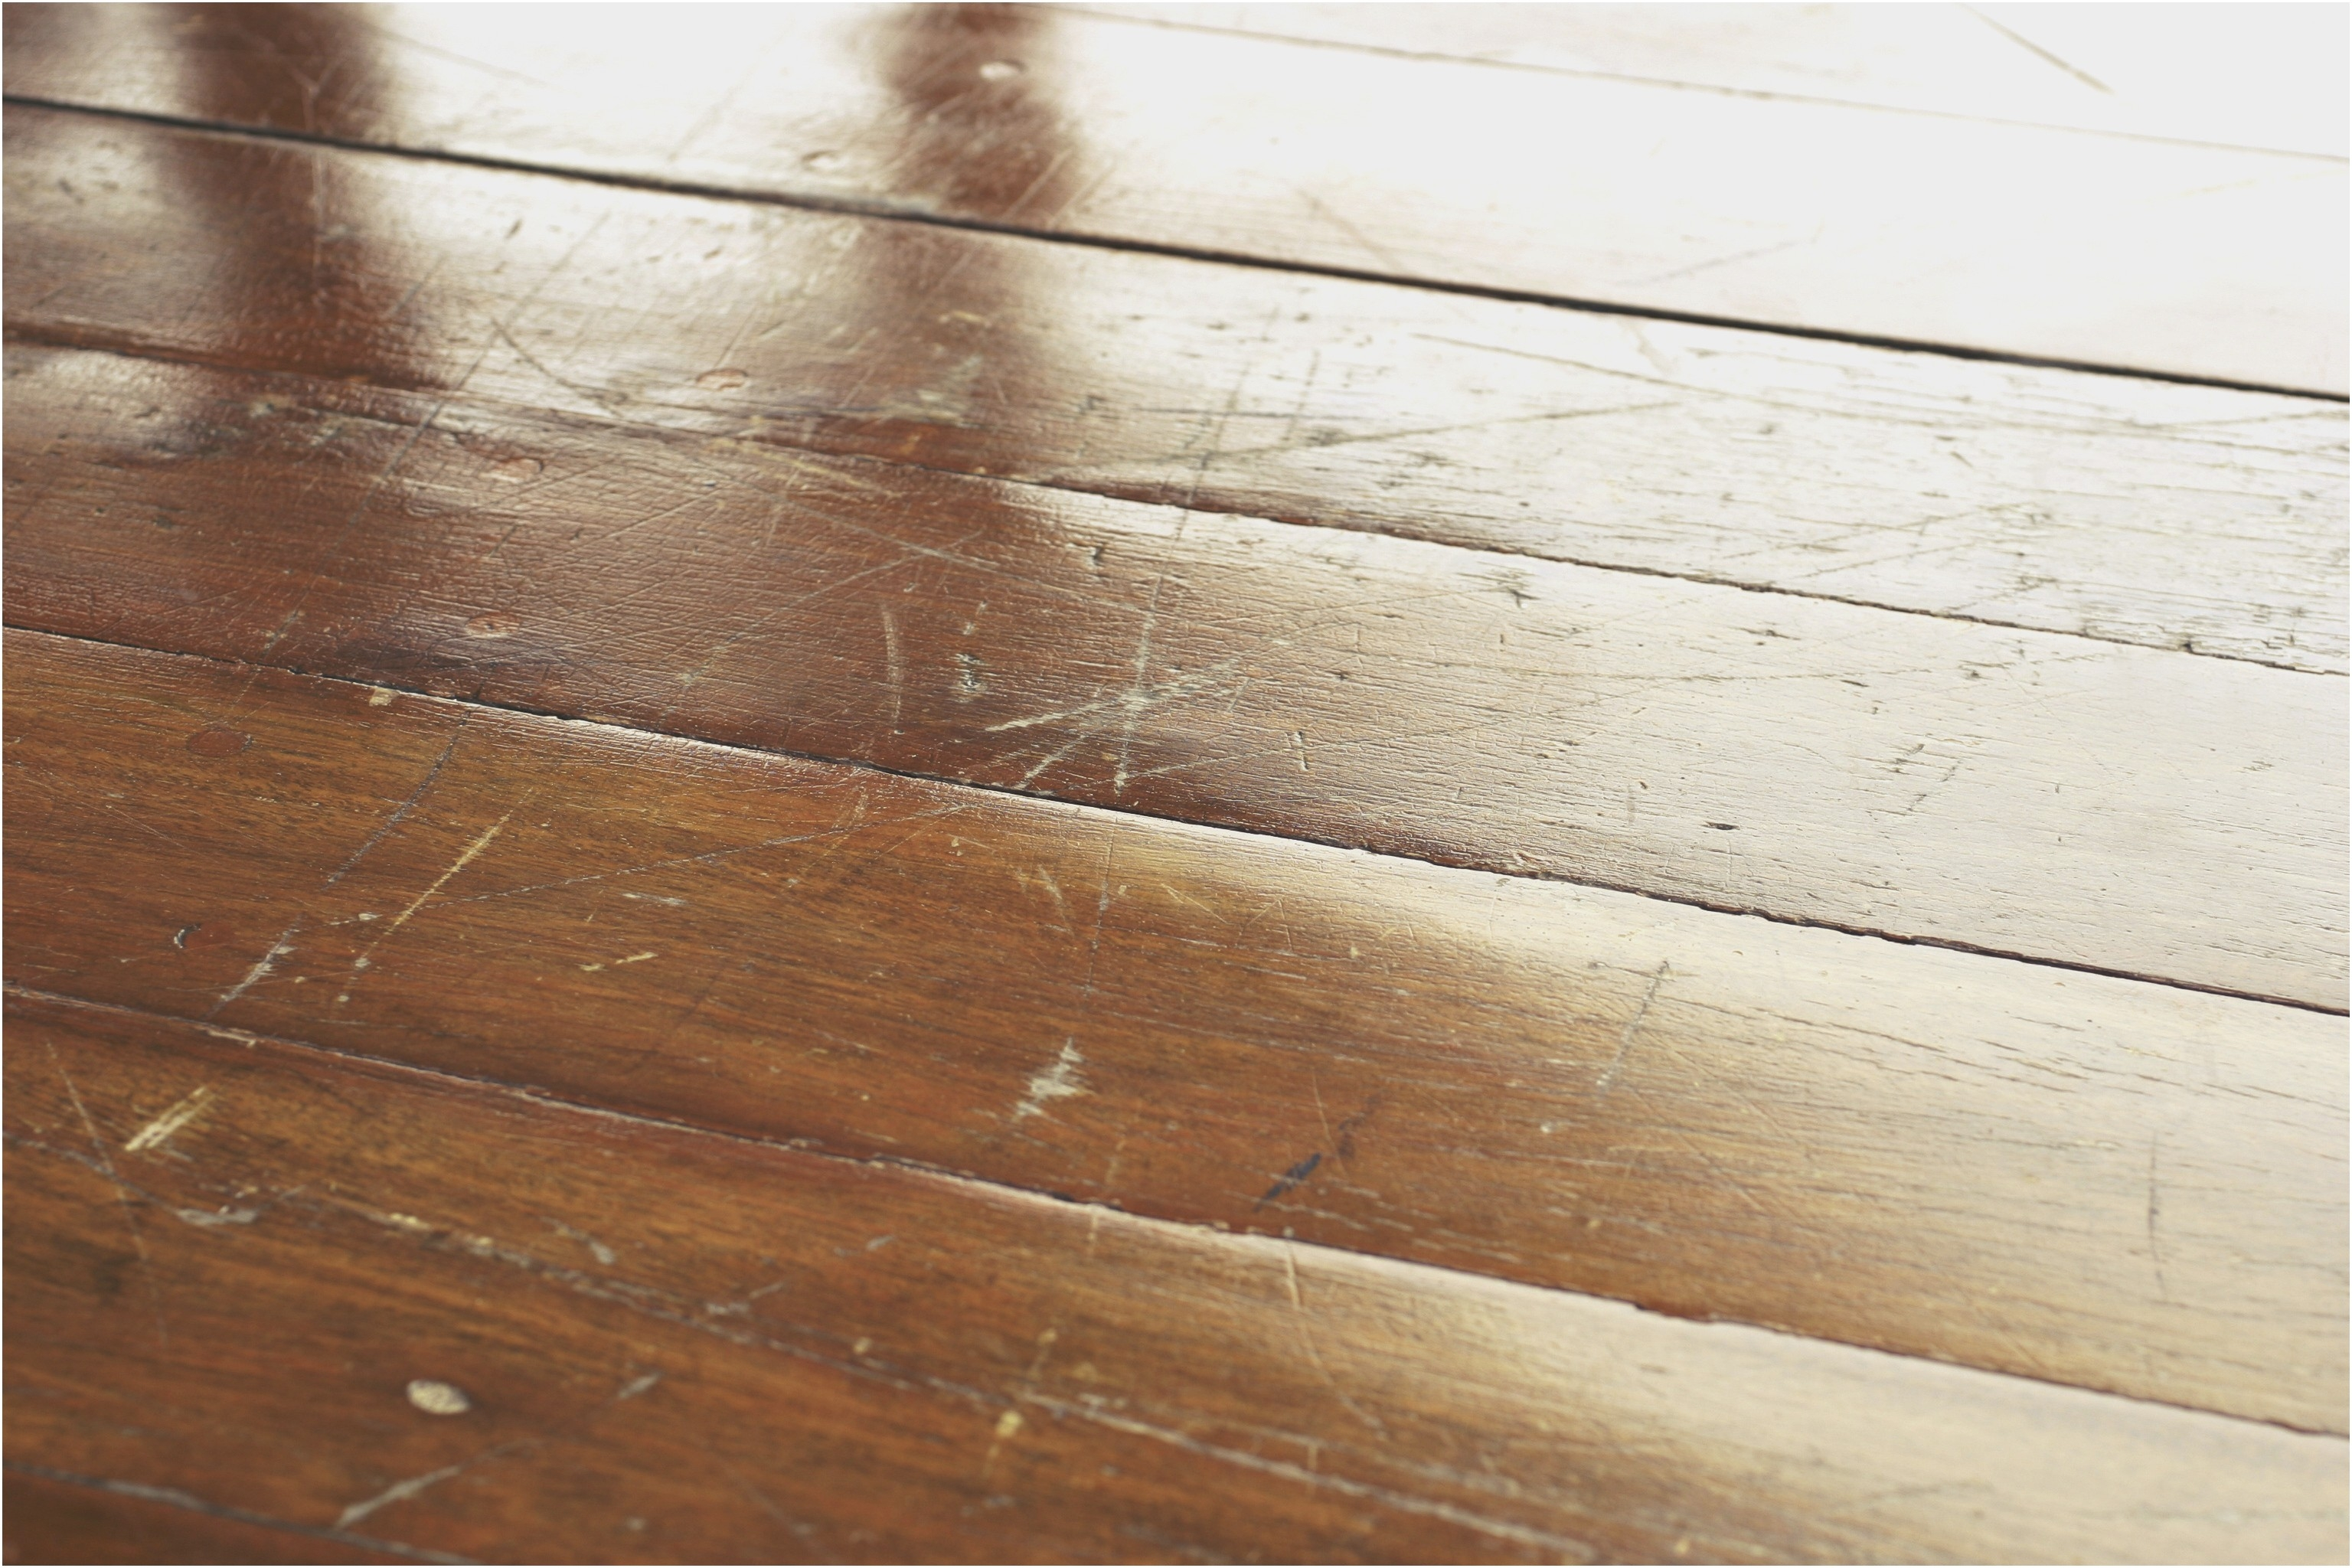 Best Dust Mop For Engineered Wood Floors